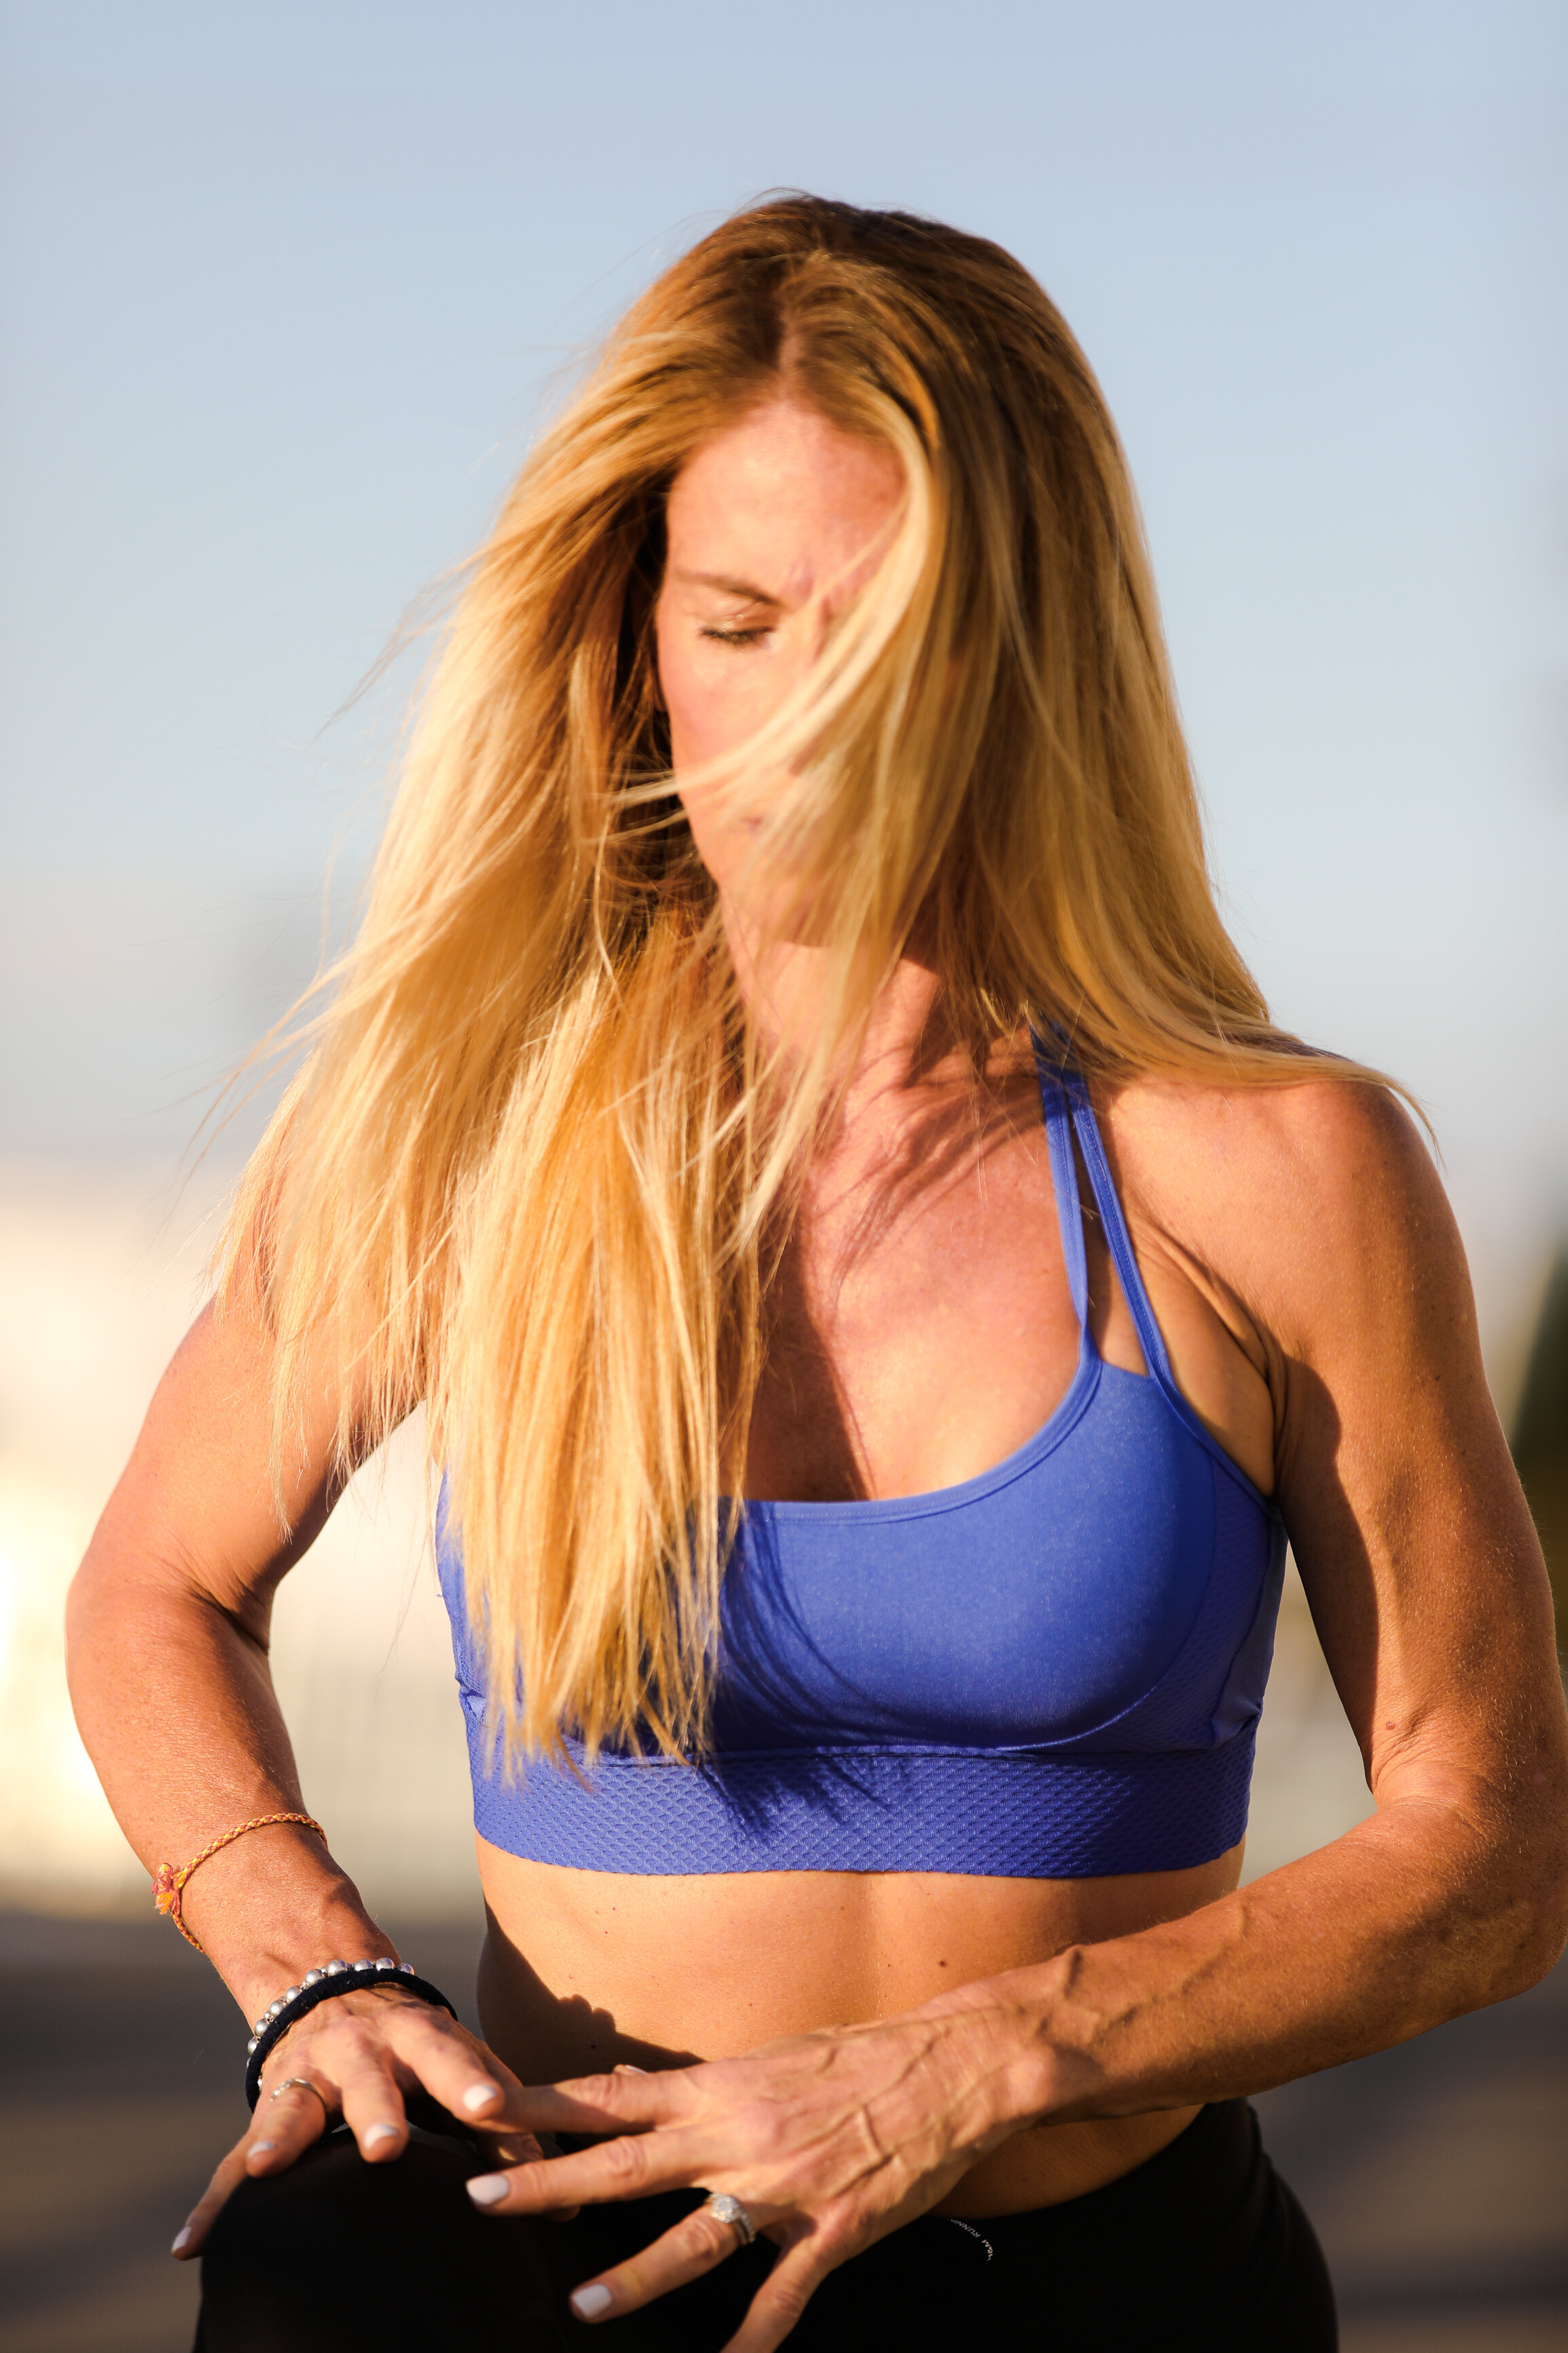 movement, connection & joy - There is nothing greater than feeling connected and enjoying your own body.